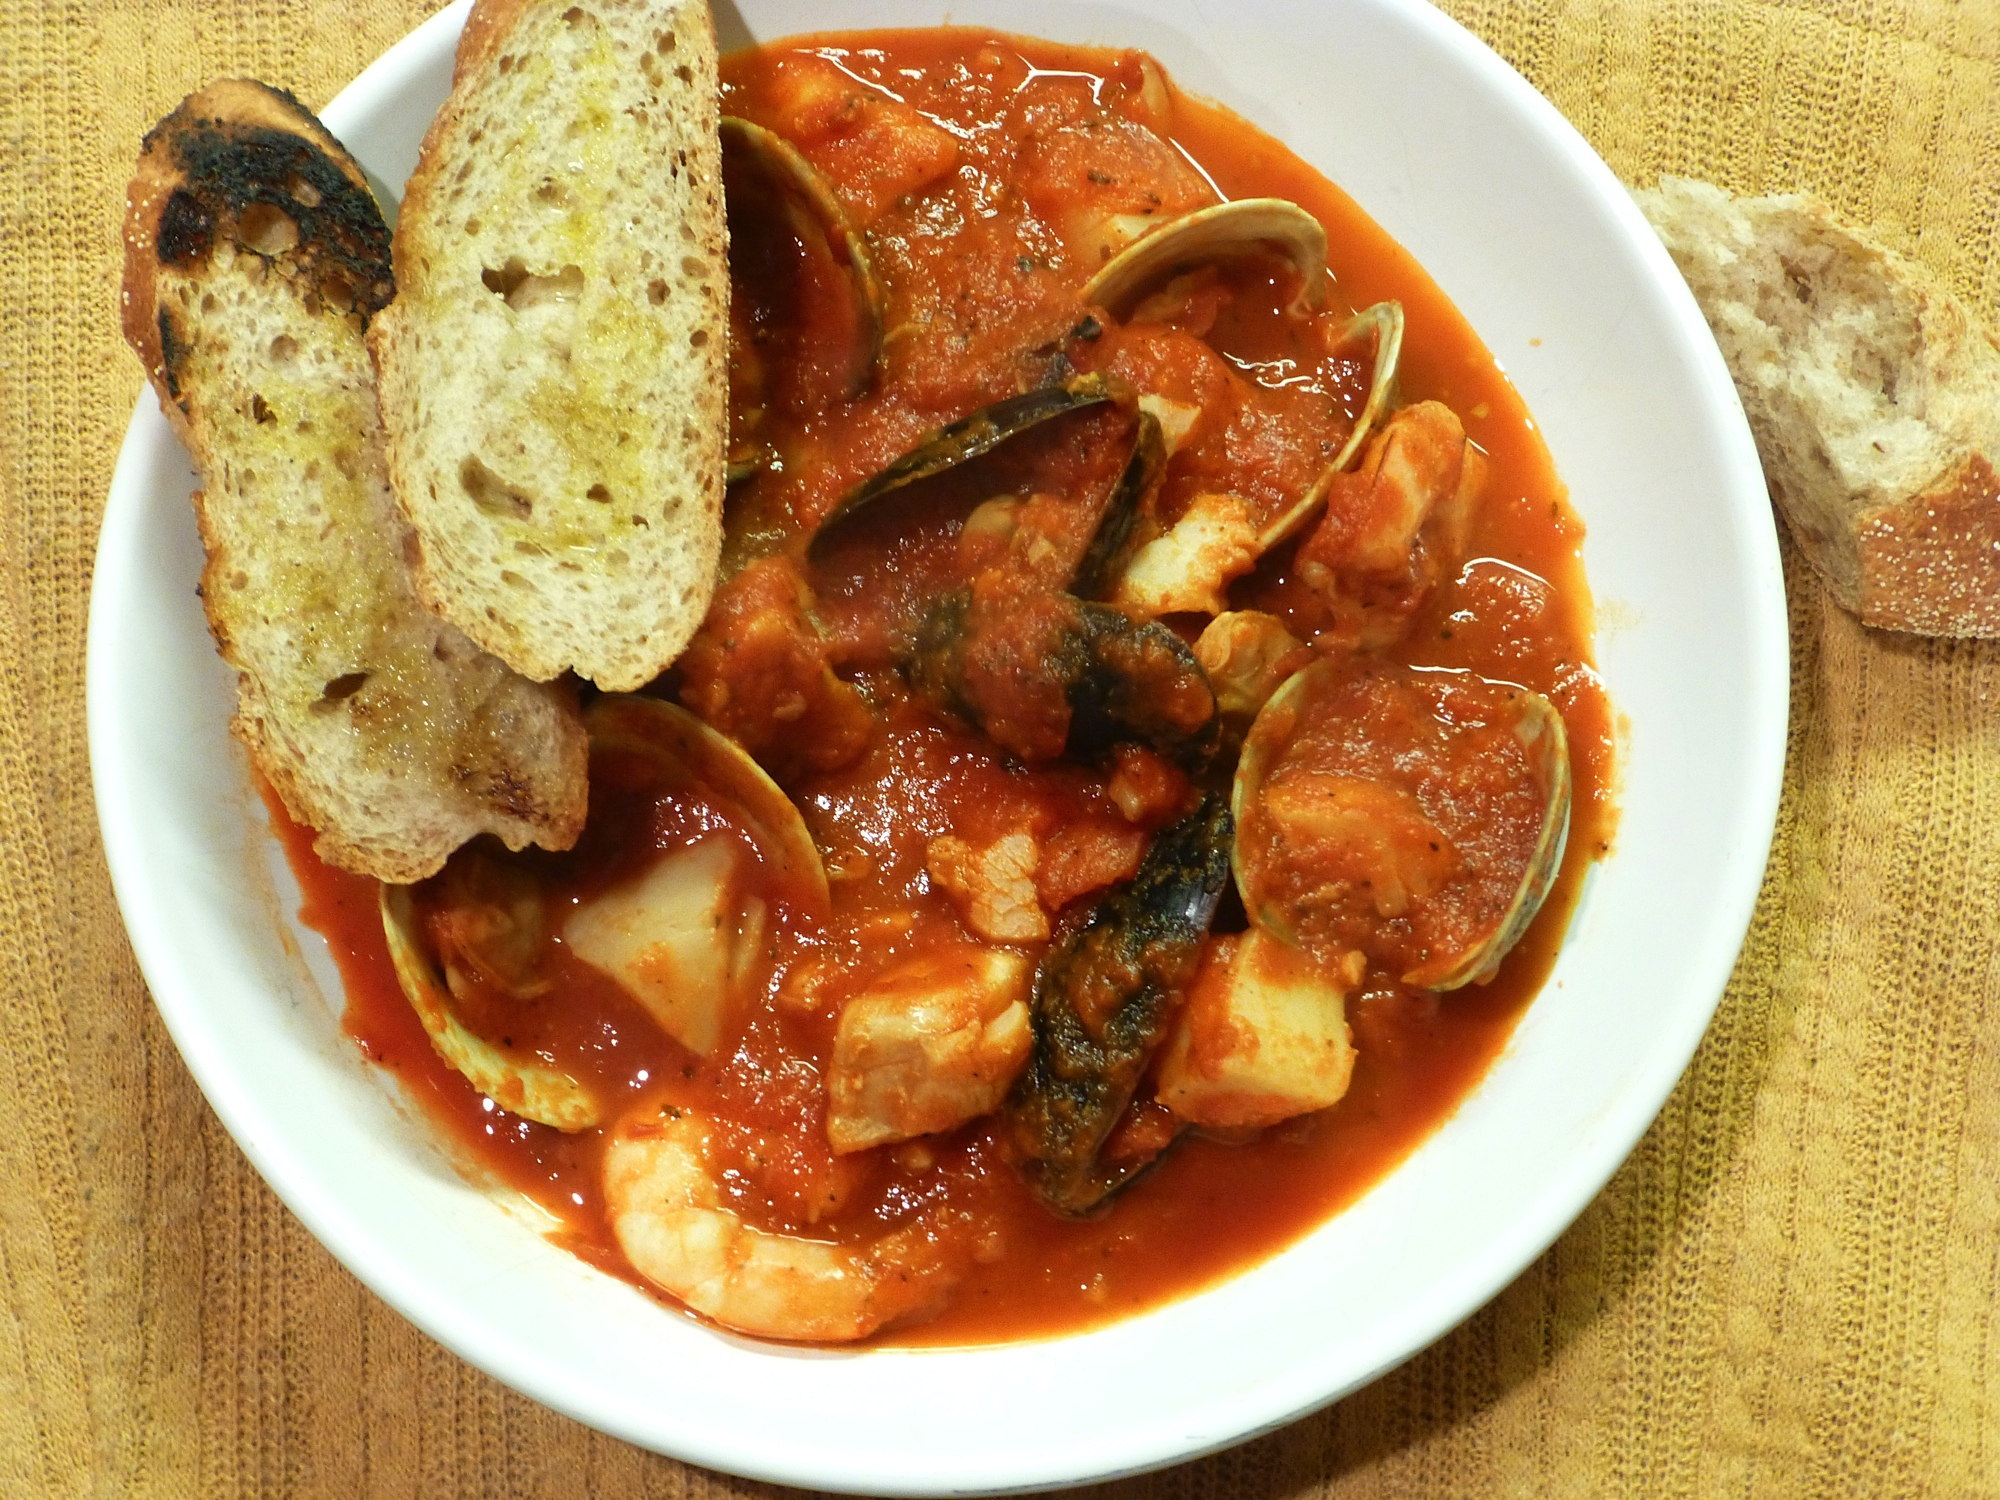 San francisco cioppino american food roots for American cuisine san francisco